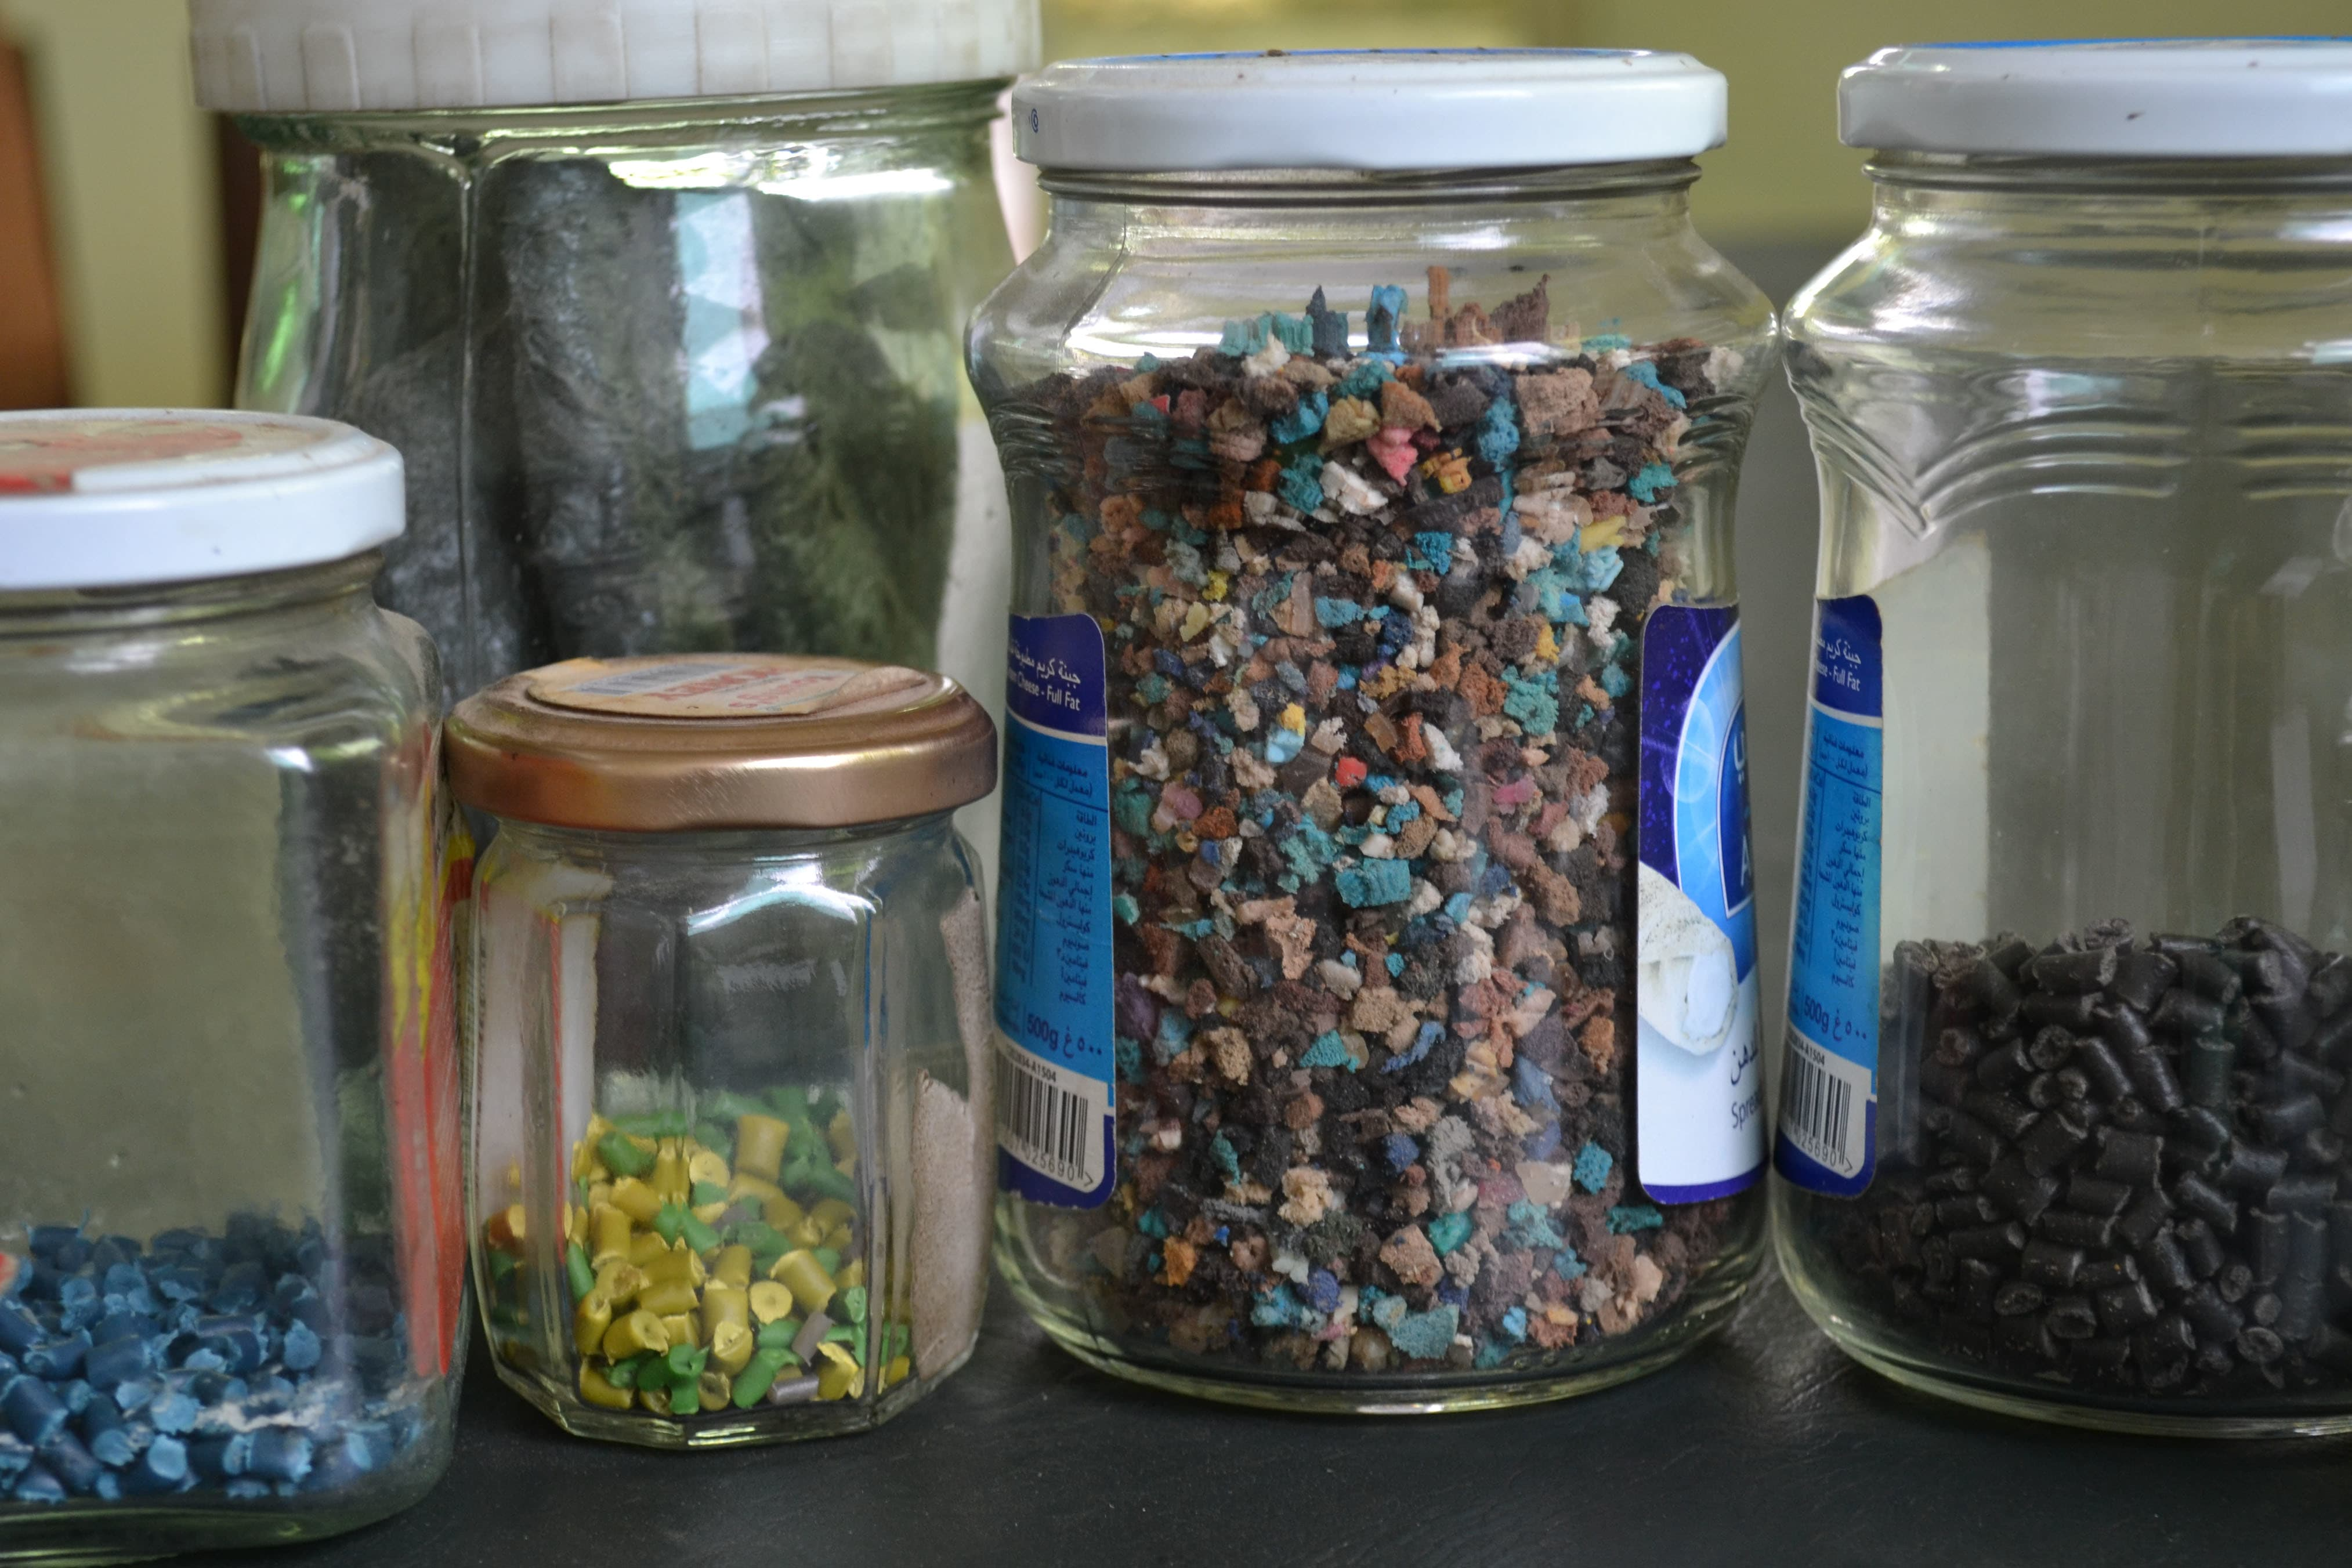 Recycled plastic is reduced to pellets which can be used to produce new plastic products. —*Photo by author*